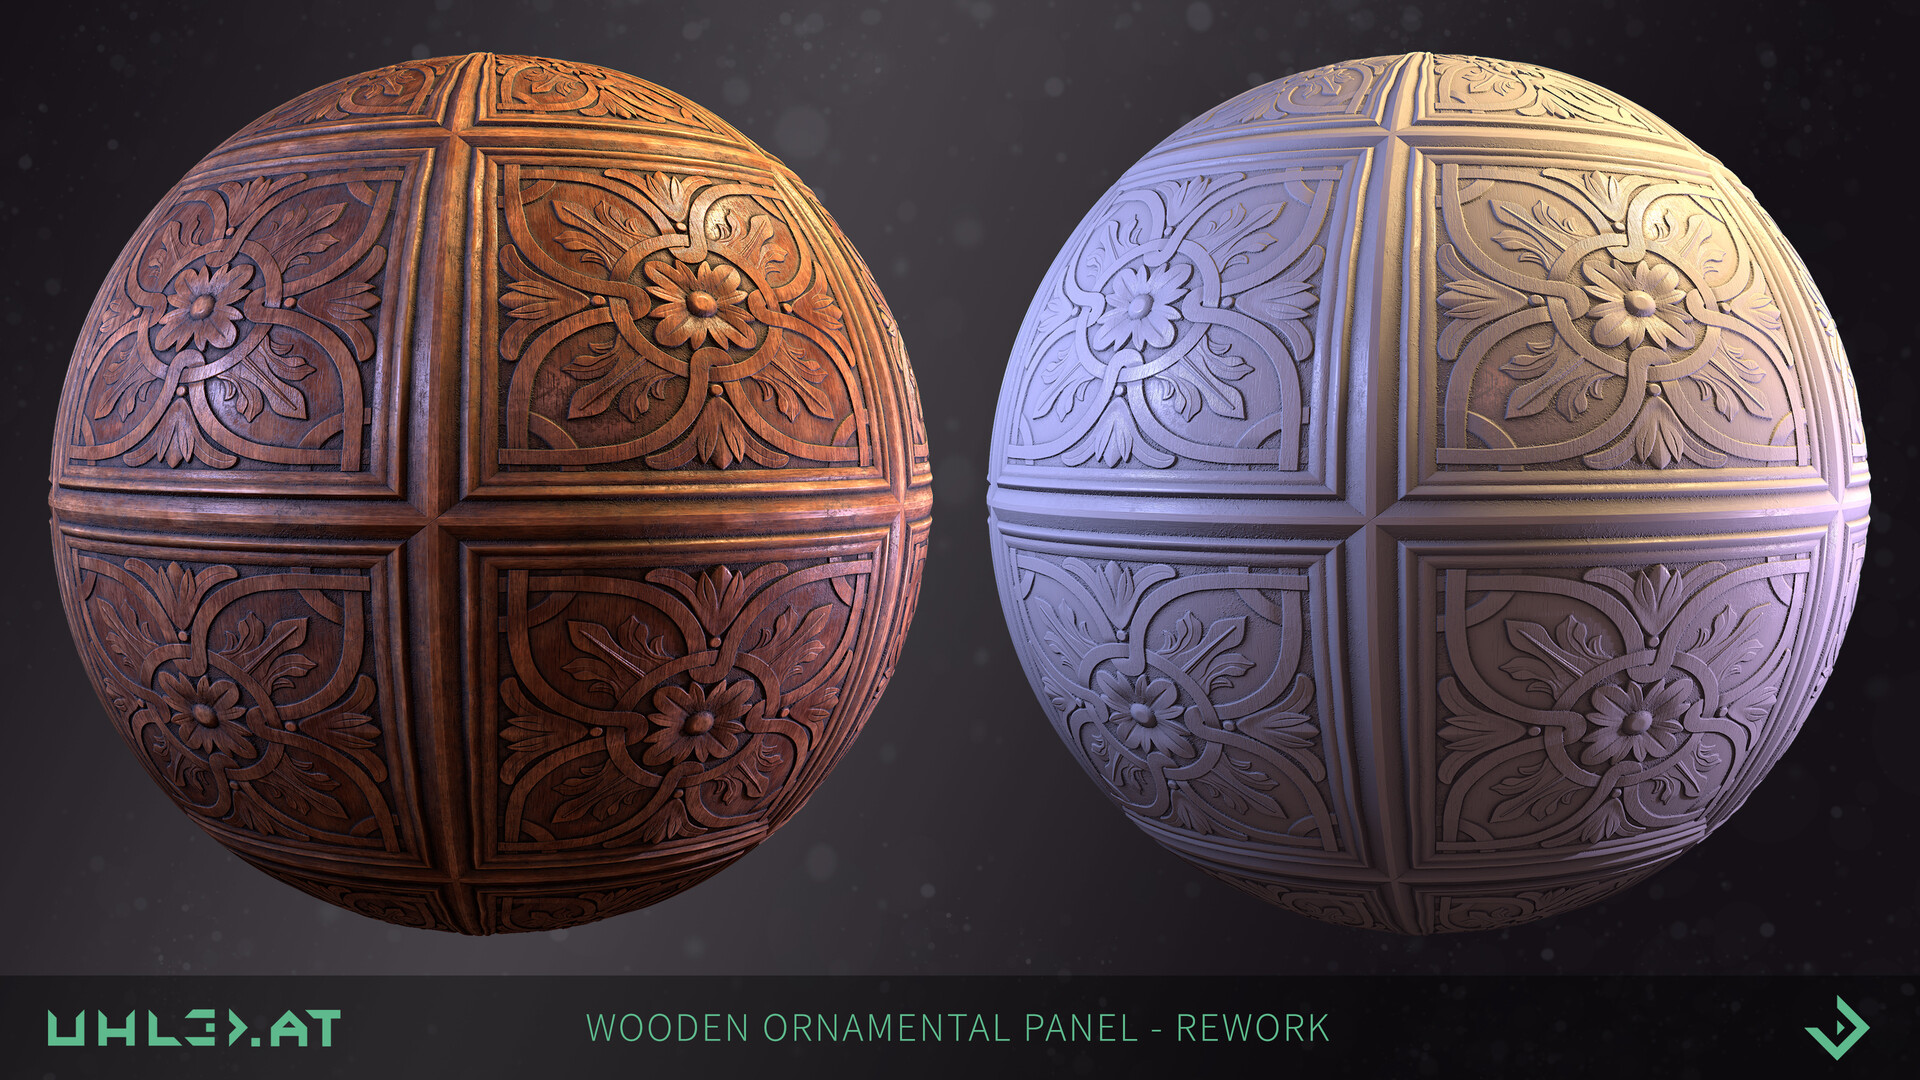 Dominik uhl wood panel ornament rework 02